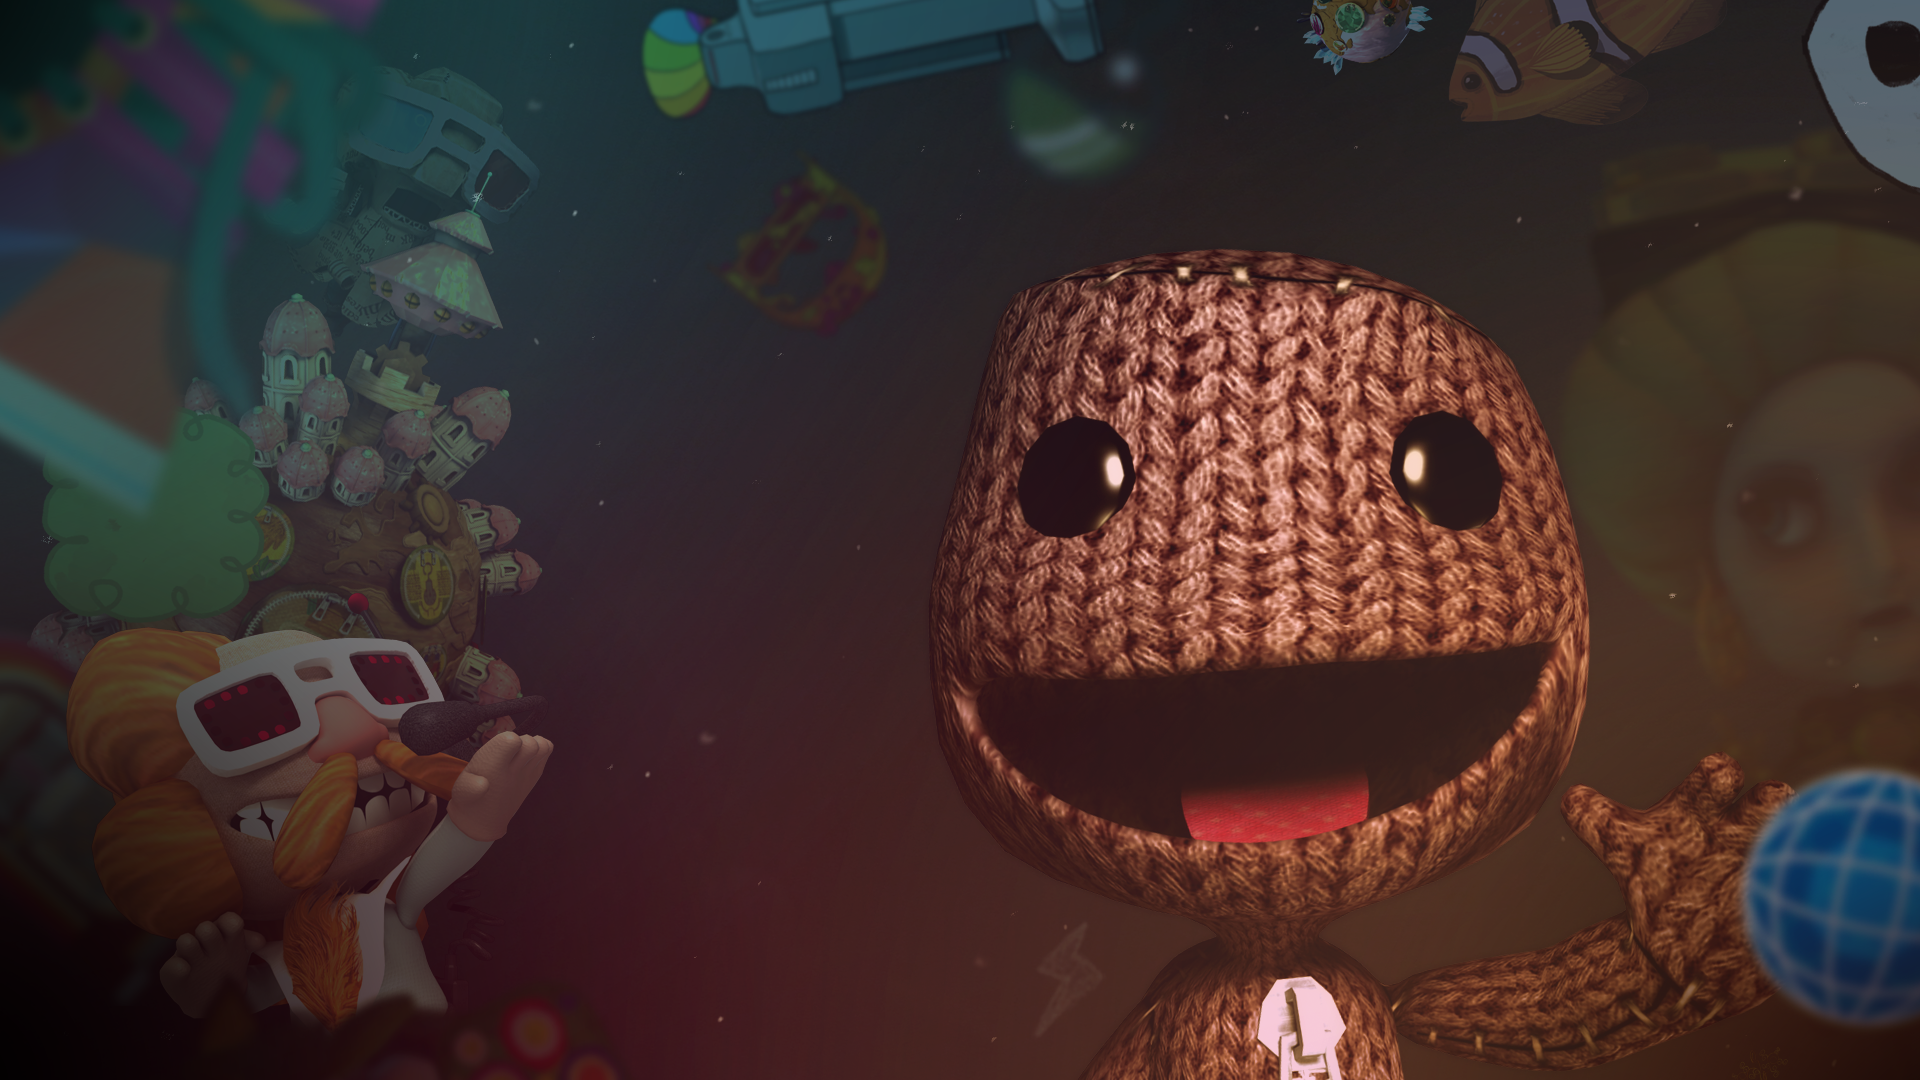 Little Big Planet Wallpapers High Quality Download Free